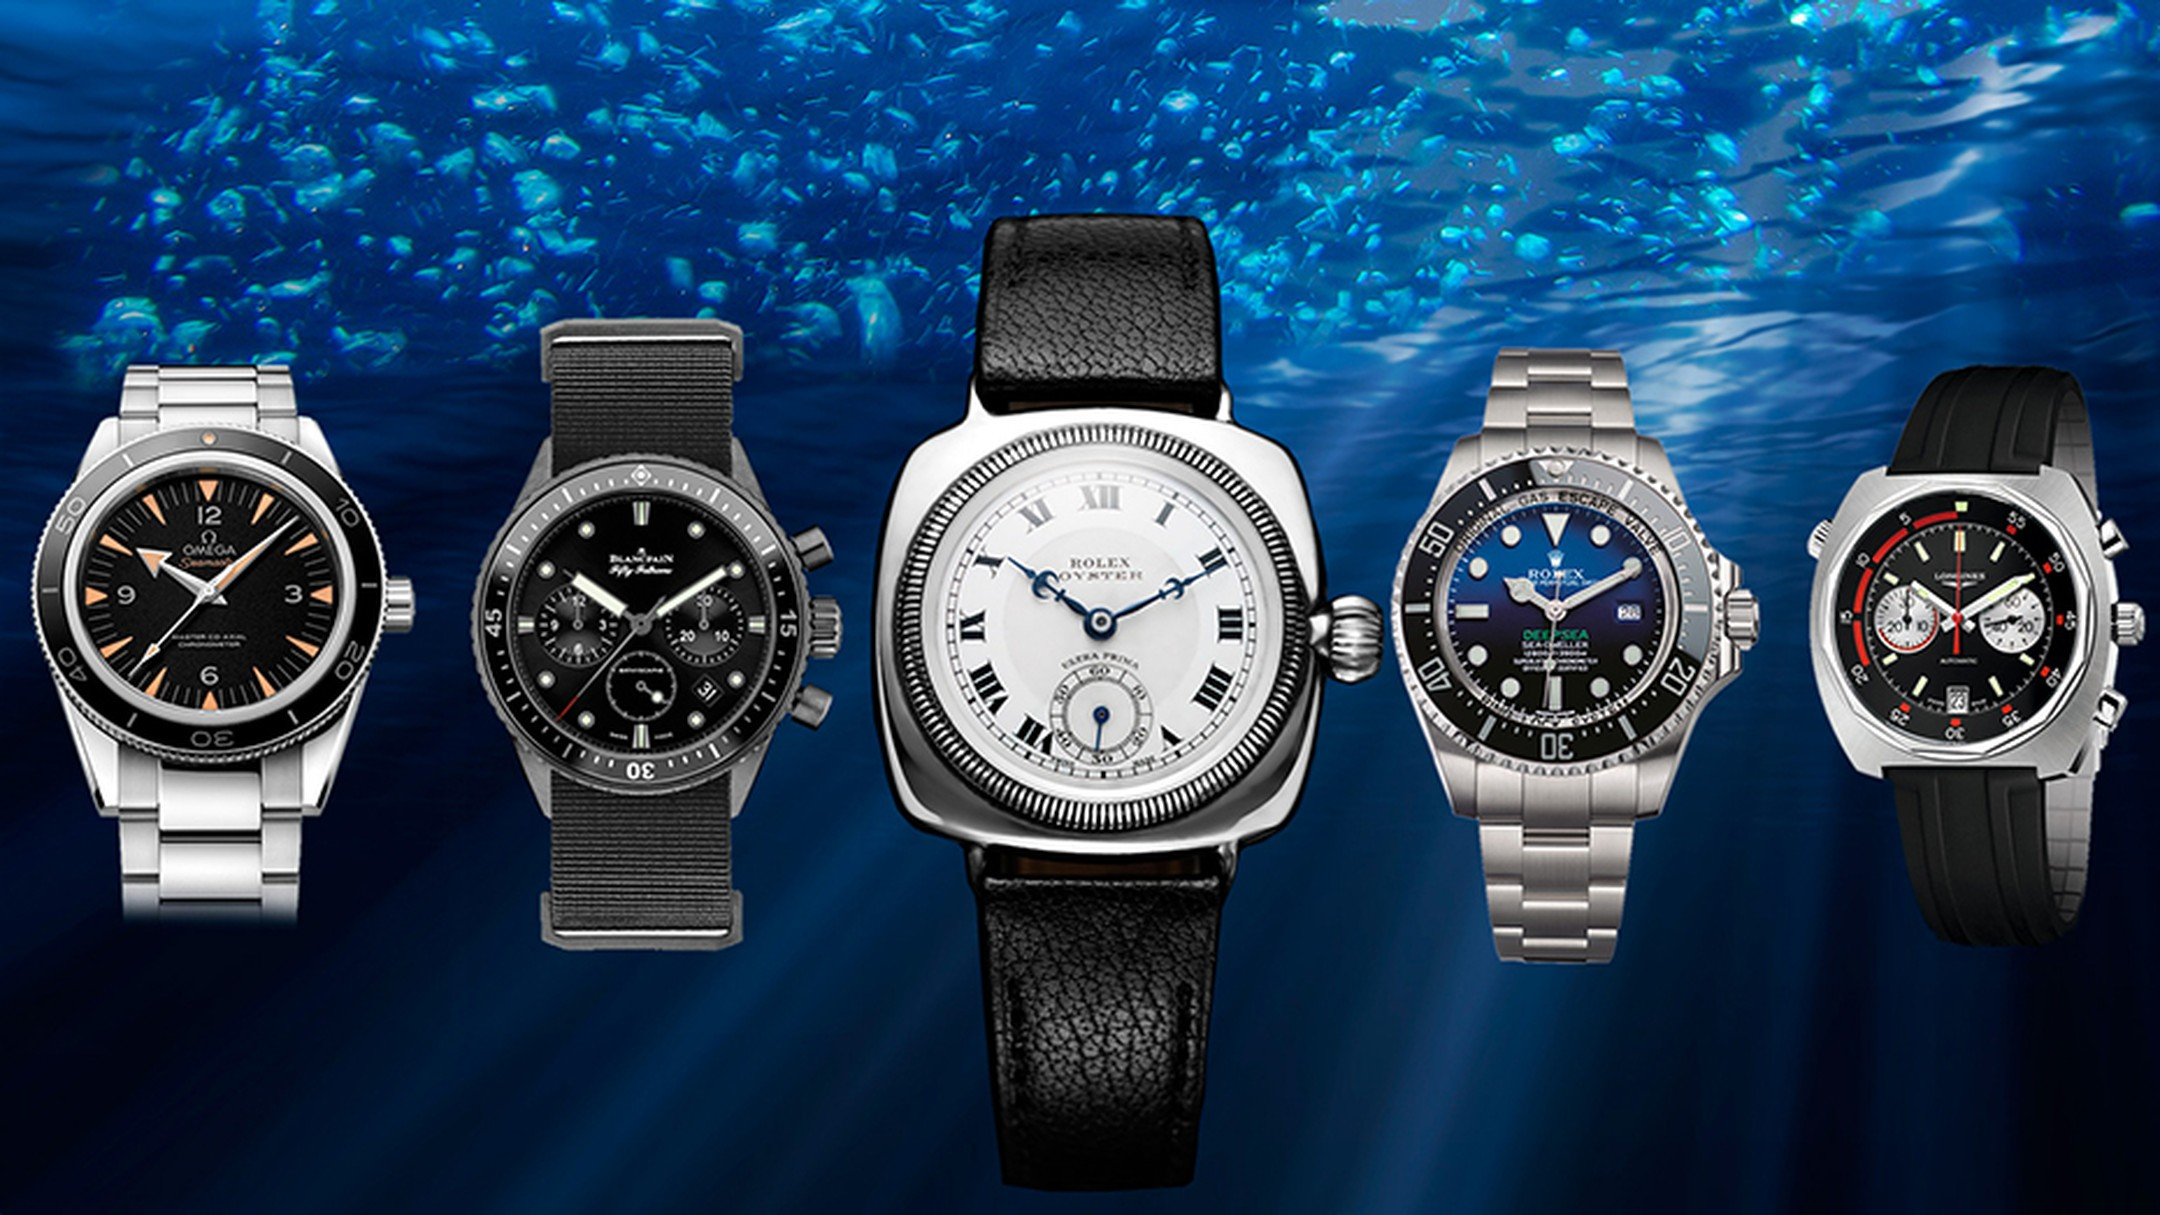 Some great retro-styled dive watches have resurfaced this year from Rolex, Blancpain, Longines and Omega. Pictured in the centre, the world's first waterproof watch: the Rolex Oyster.